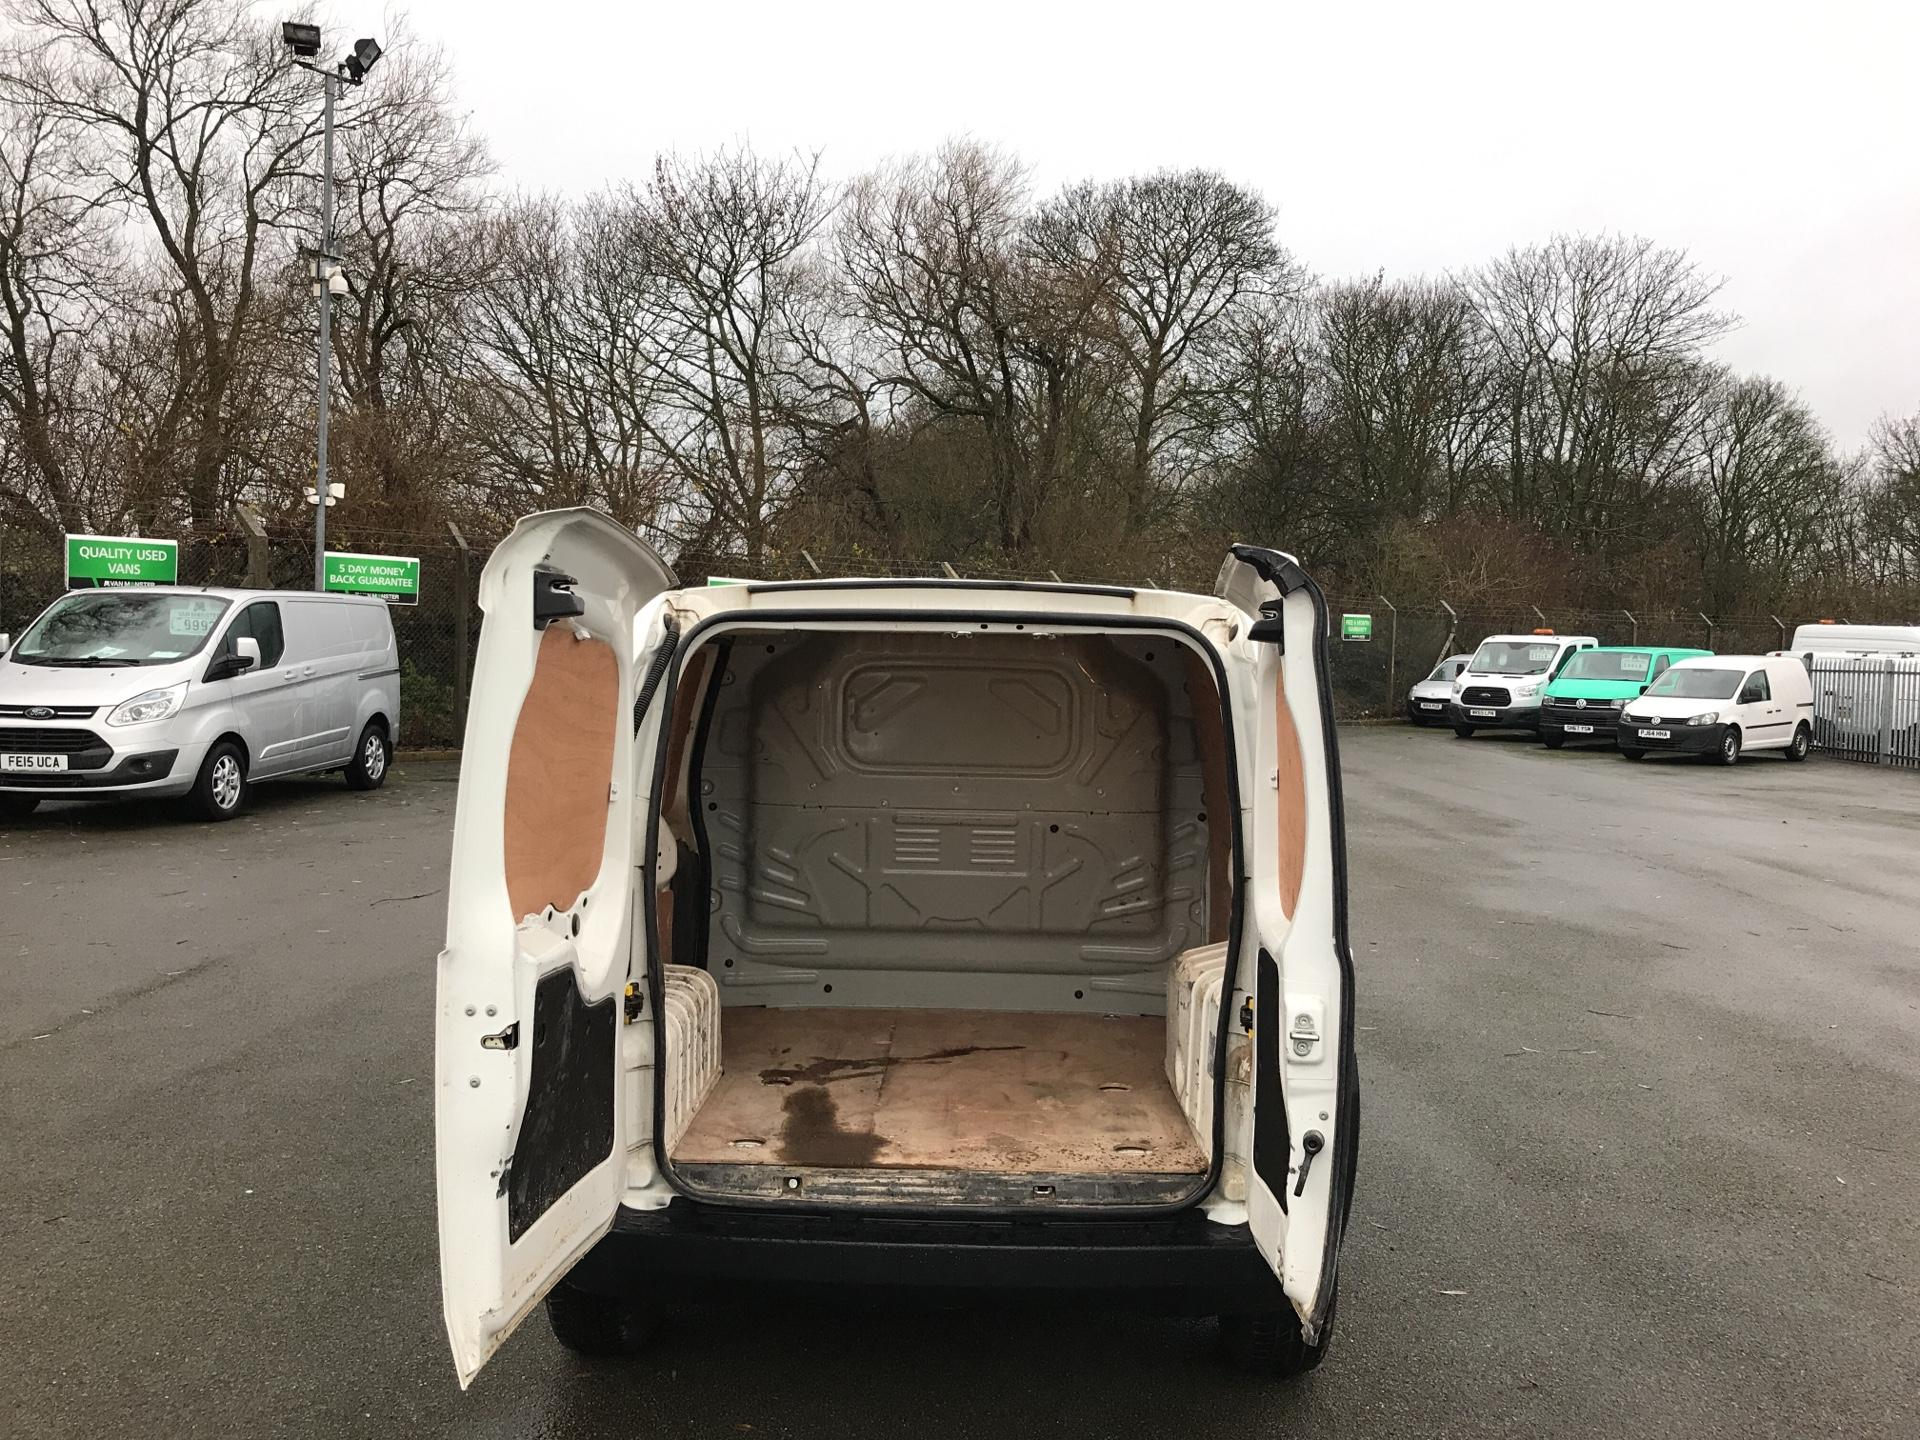 2014 Peugeot Bipper 1.3 HDI 75 S PLUS PACK NON S/S EURO 5 (NU64HLP) Image 15